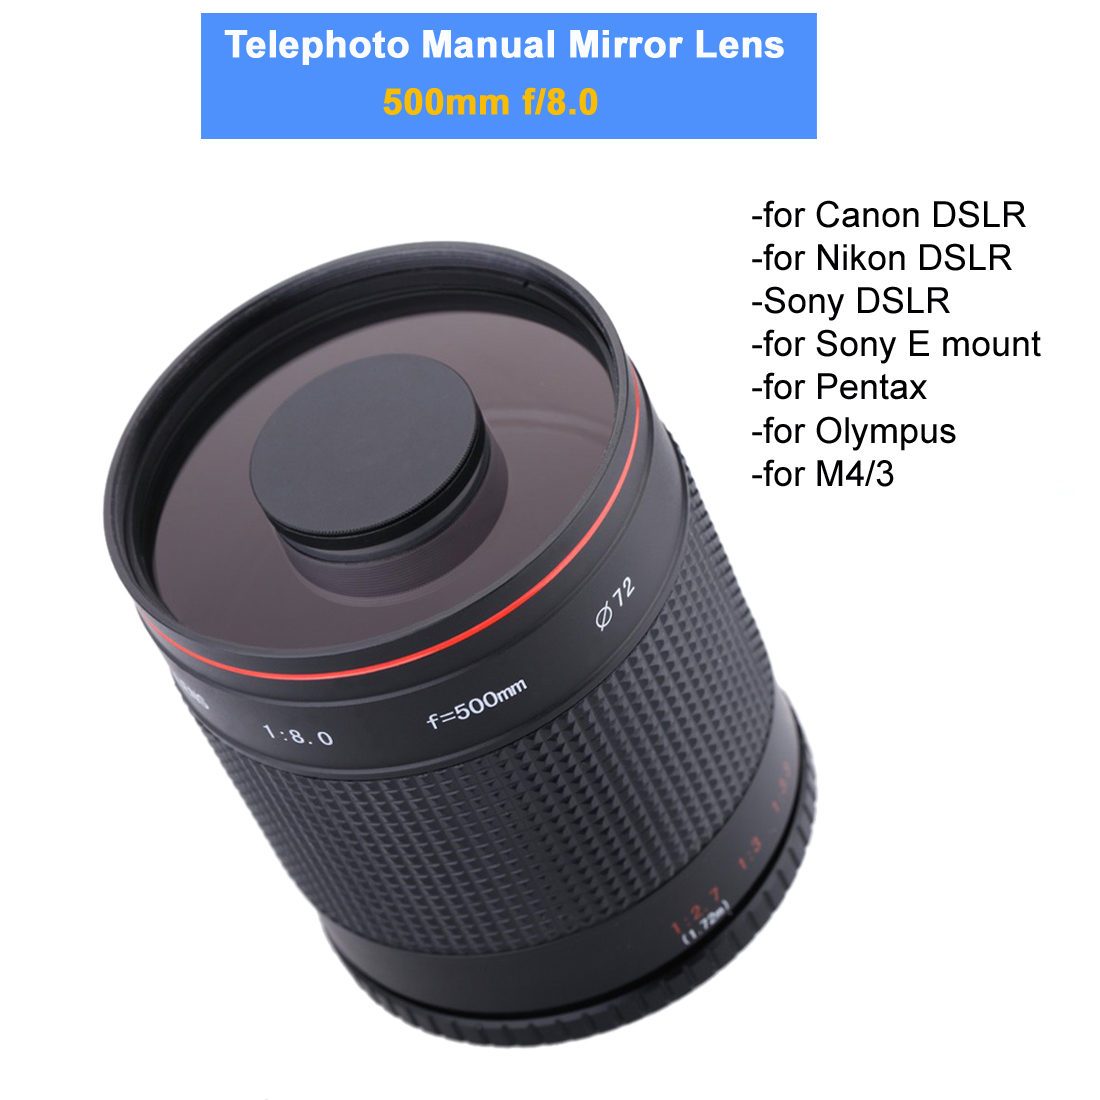 500mm F/8.0 Camera Telephoto Manual Mirror Lens+T2 Mount Adapter for Canon Nikon Pentax Olympus Sony A6500 A7RII M4/3 GH5 DSLR